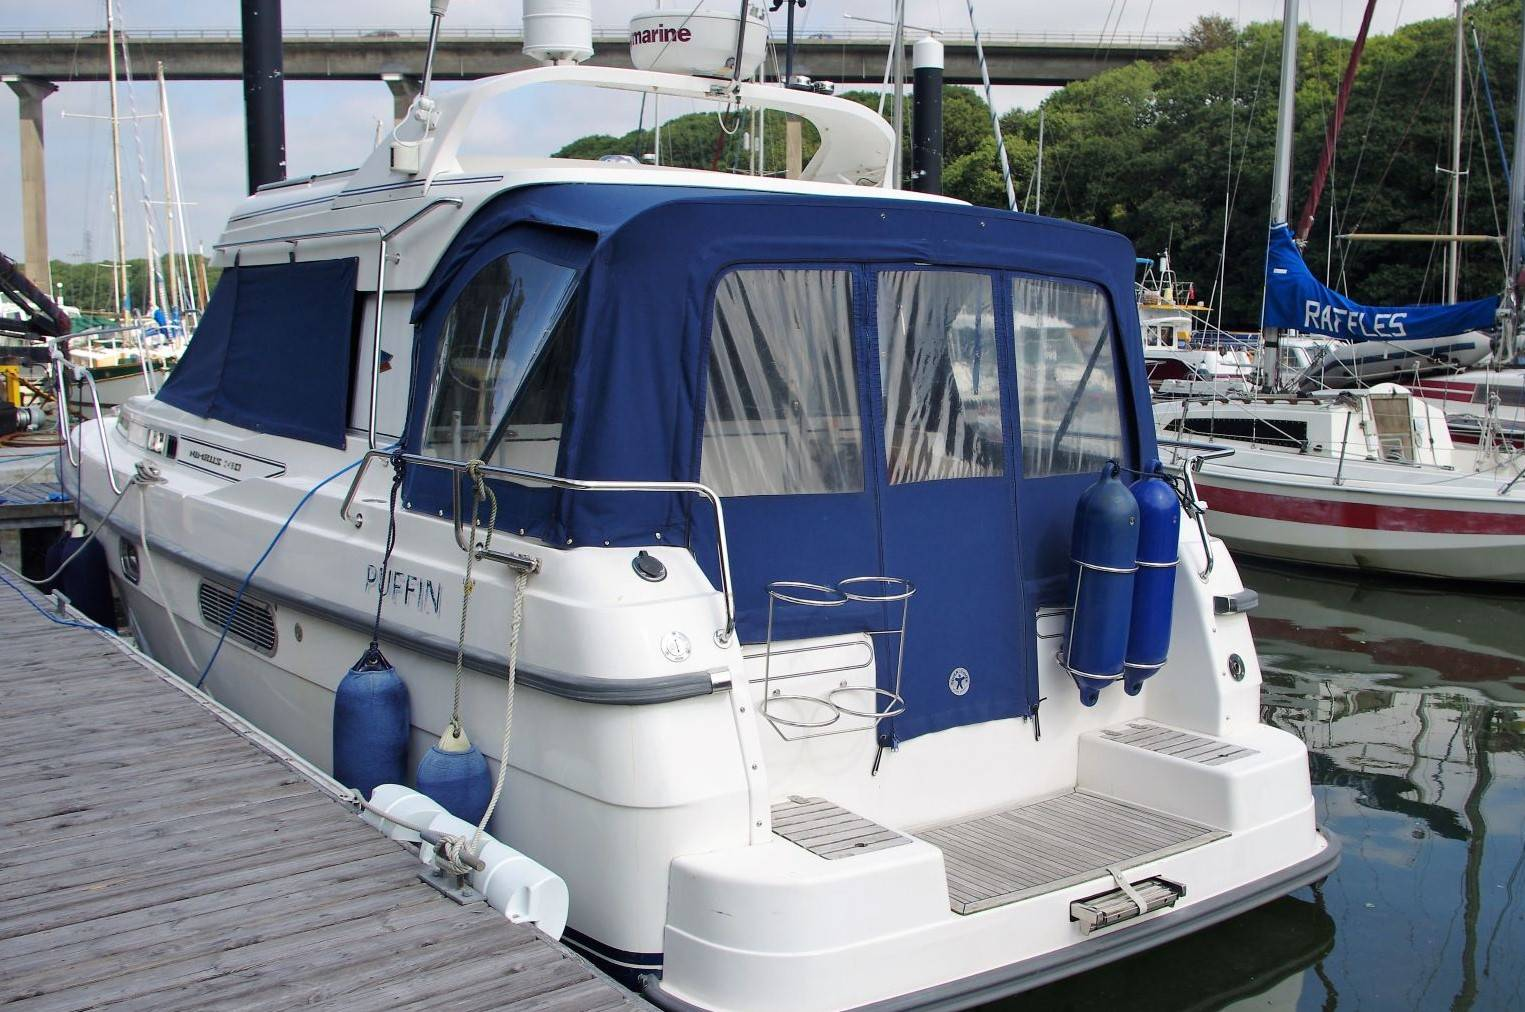 Nimbus 310 Coupe For Sale. (1999) Yachts.co Neyland Post Code: SA73 1PY. Call: 01646602500 visit: www.yachts.co